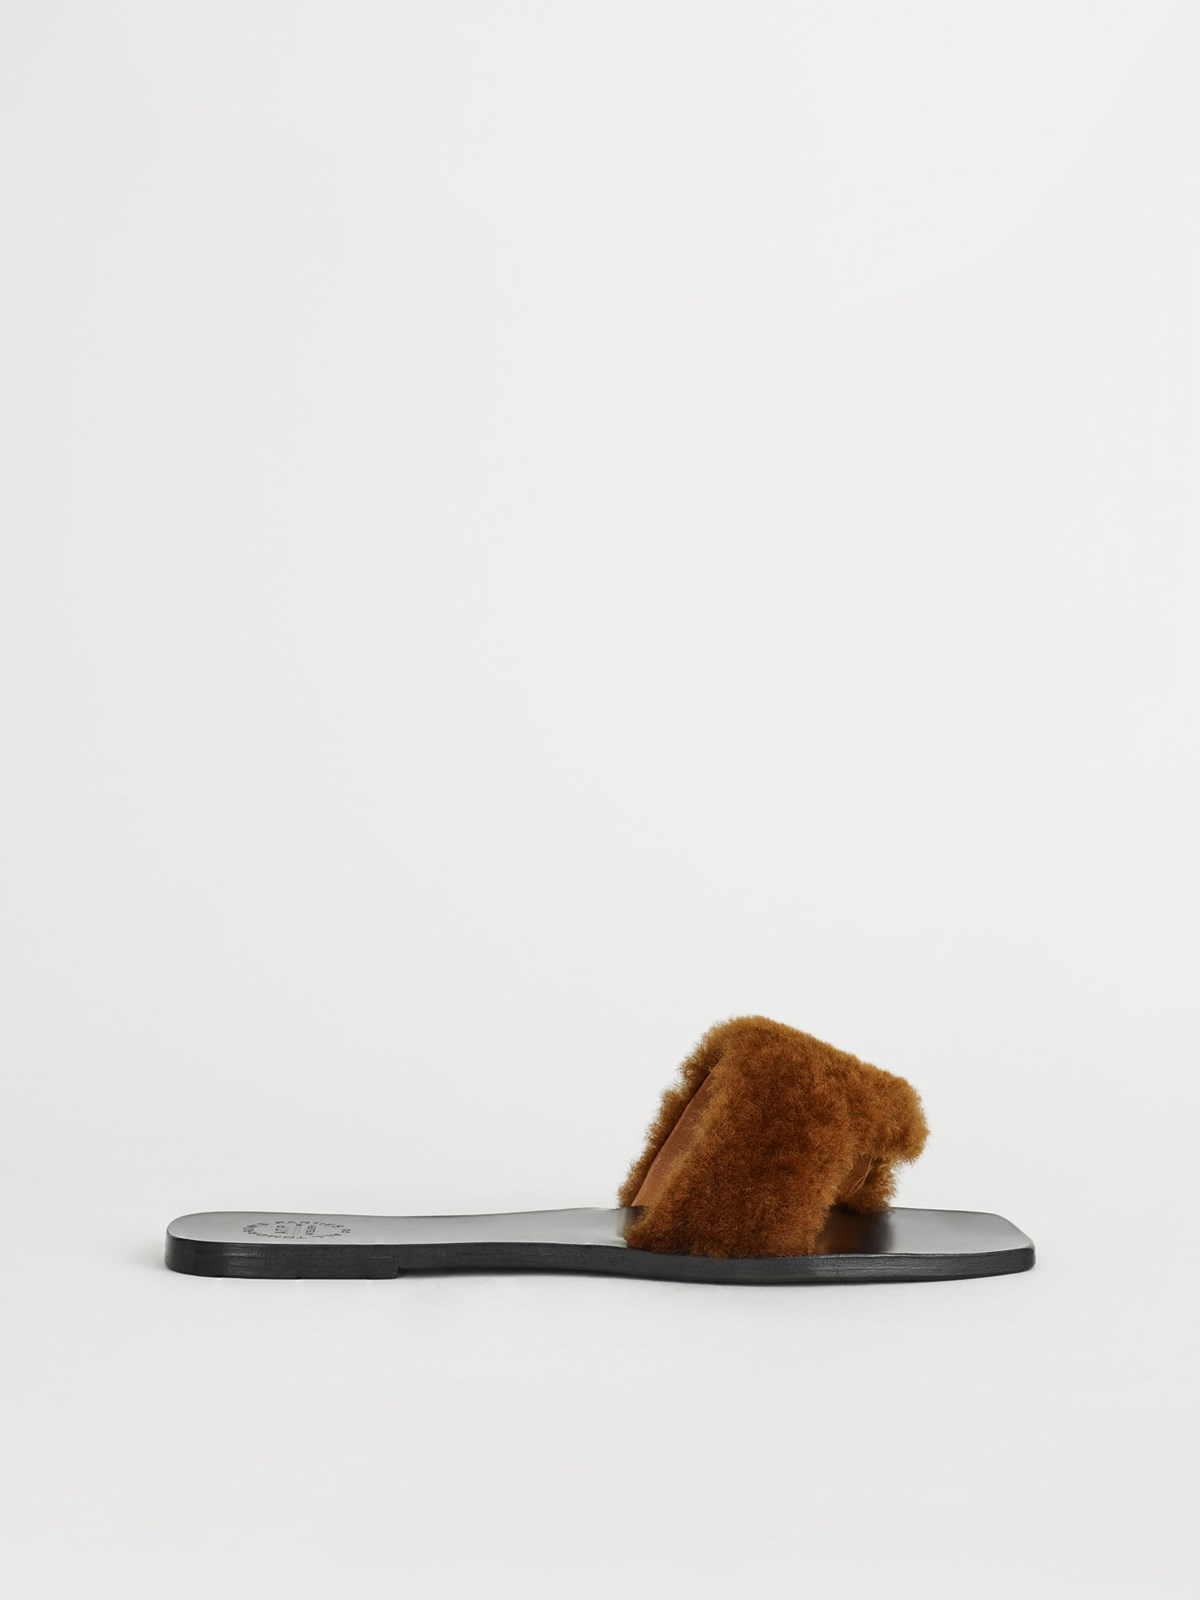 Cursi Brown Flat sandals